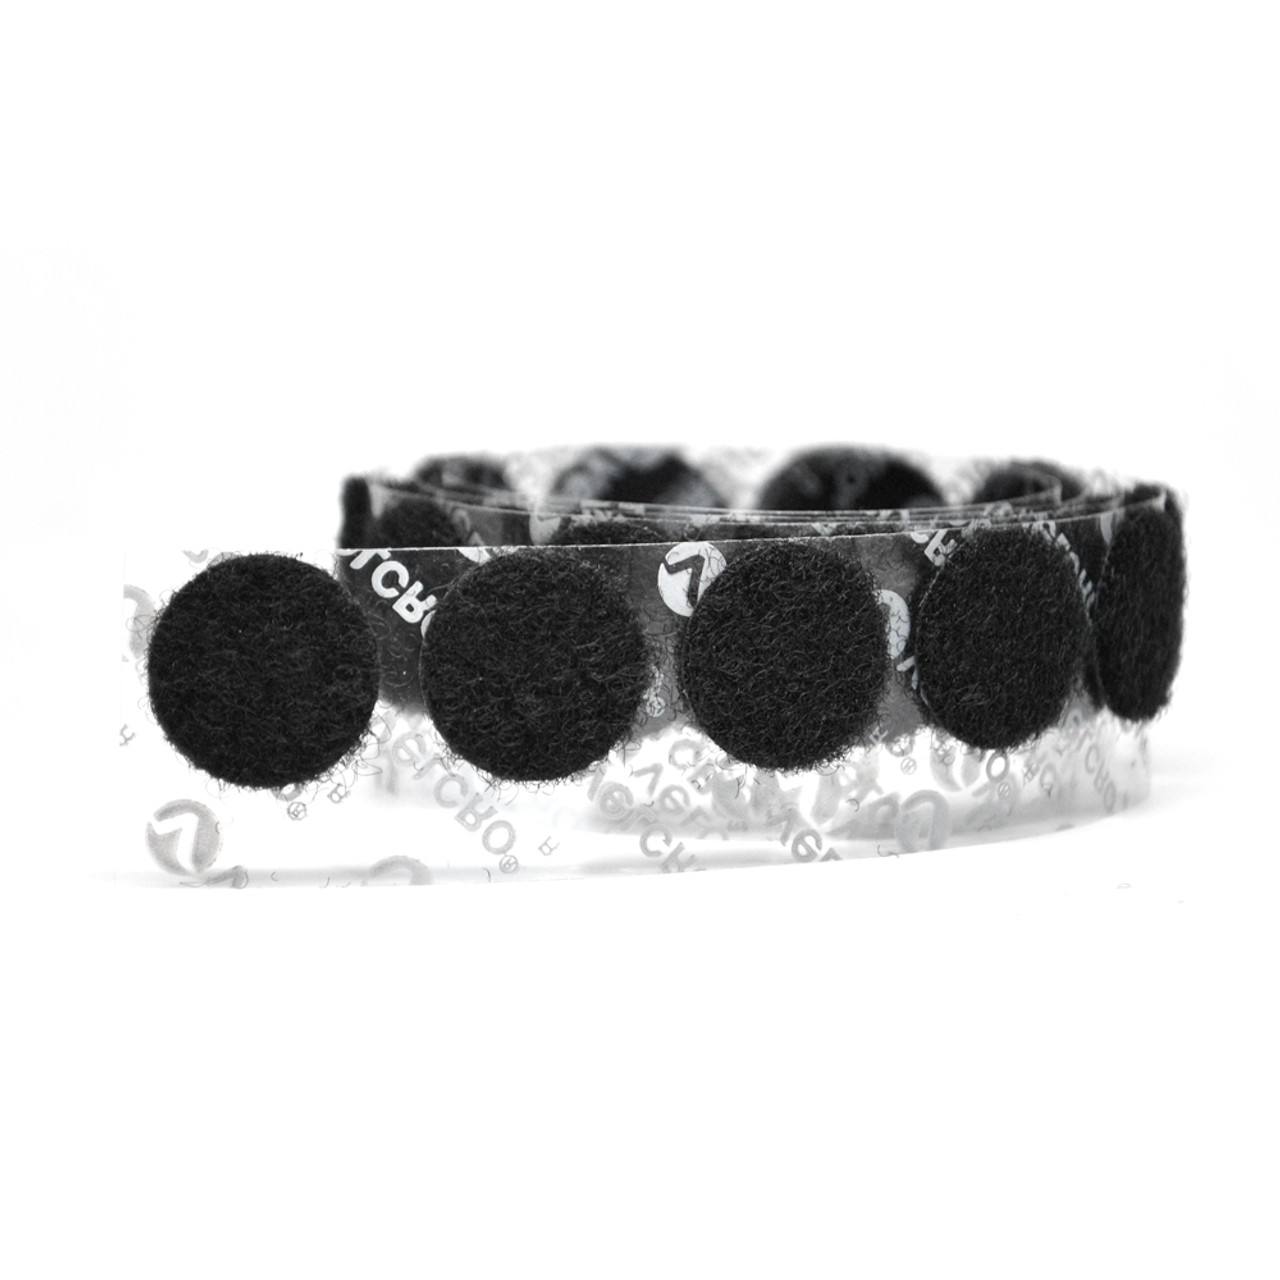 VELCRO® Brand Circles On A Roll / Velcro Fasteners